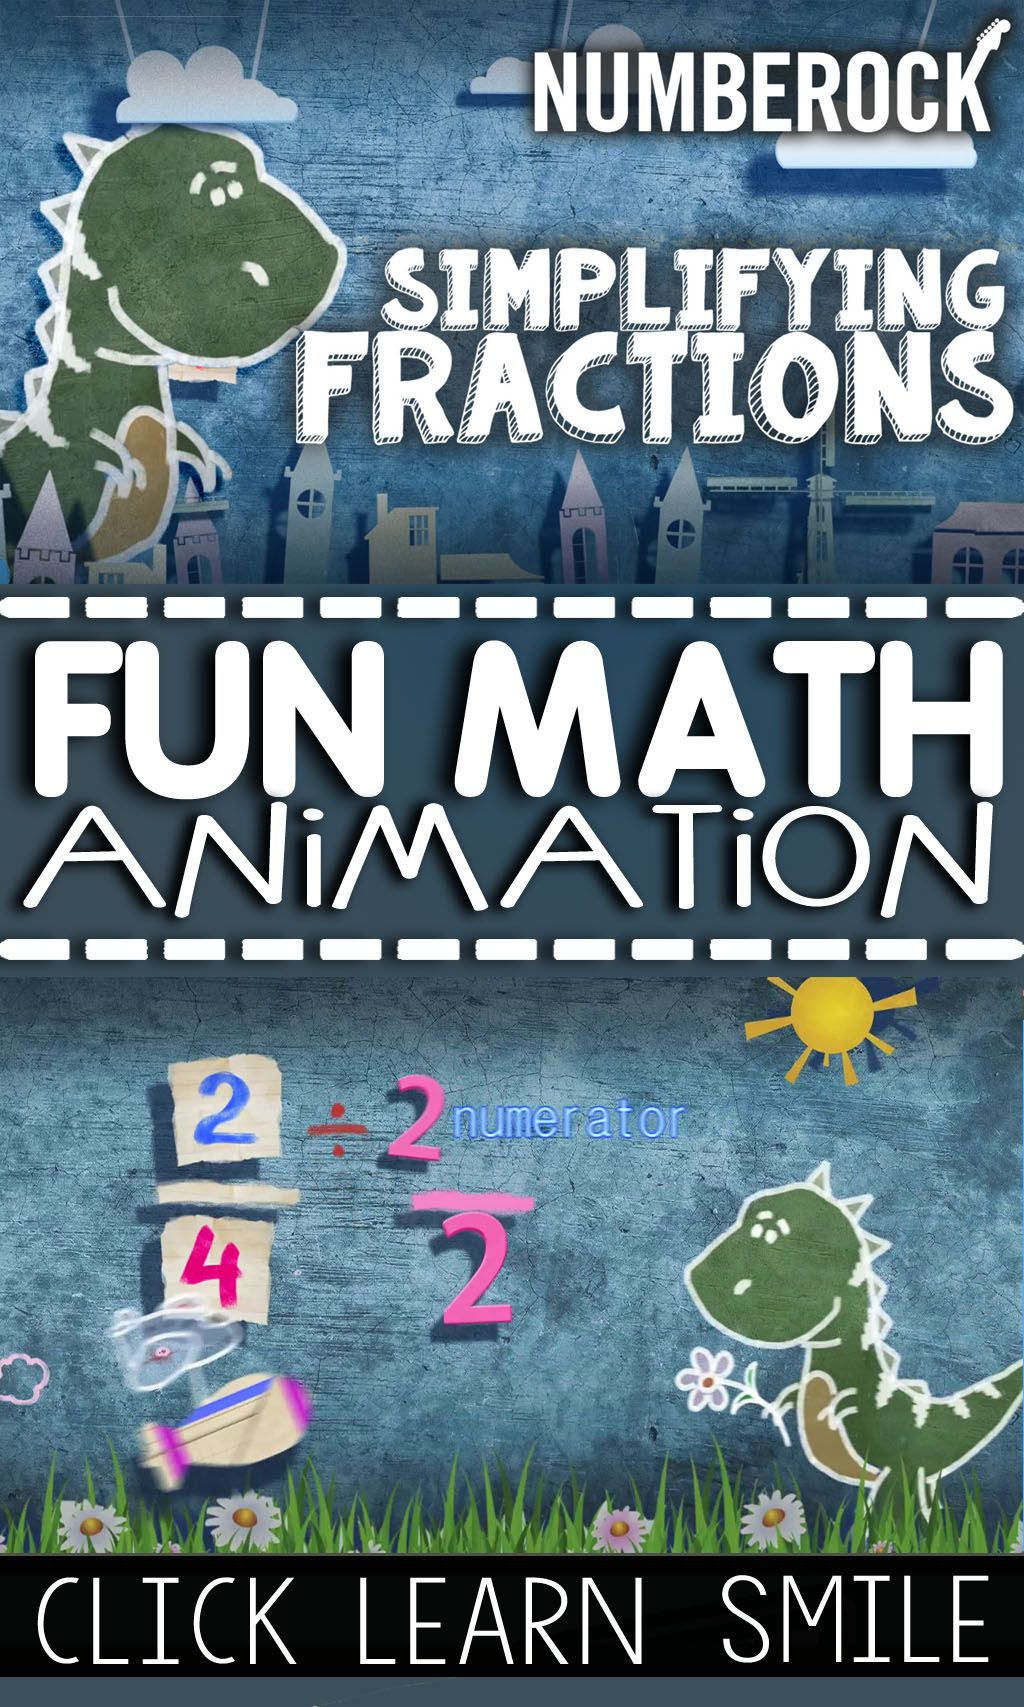 Simplifying Fractions Video Game Activities Amp Reducing